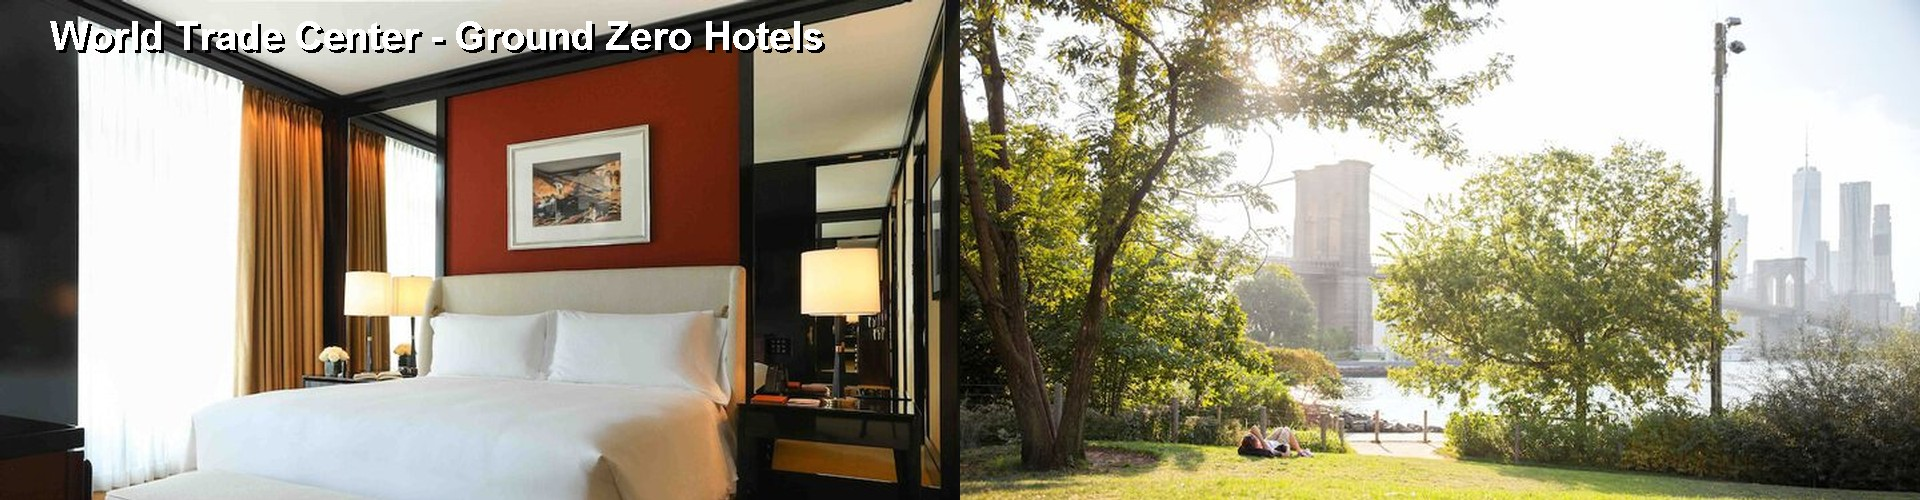 5 Best Hotels near World Trade Center - Ground Zero